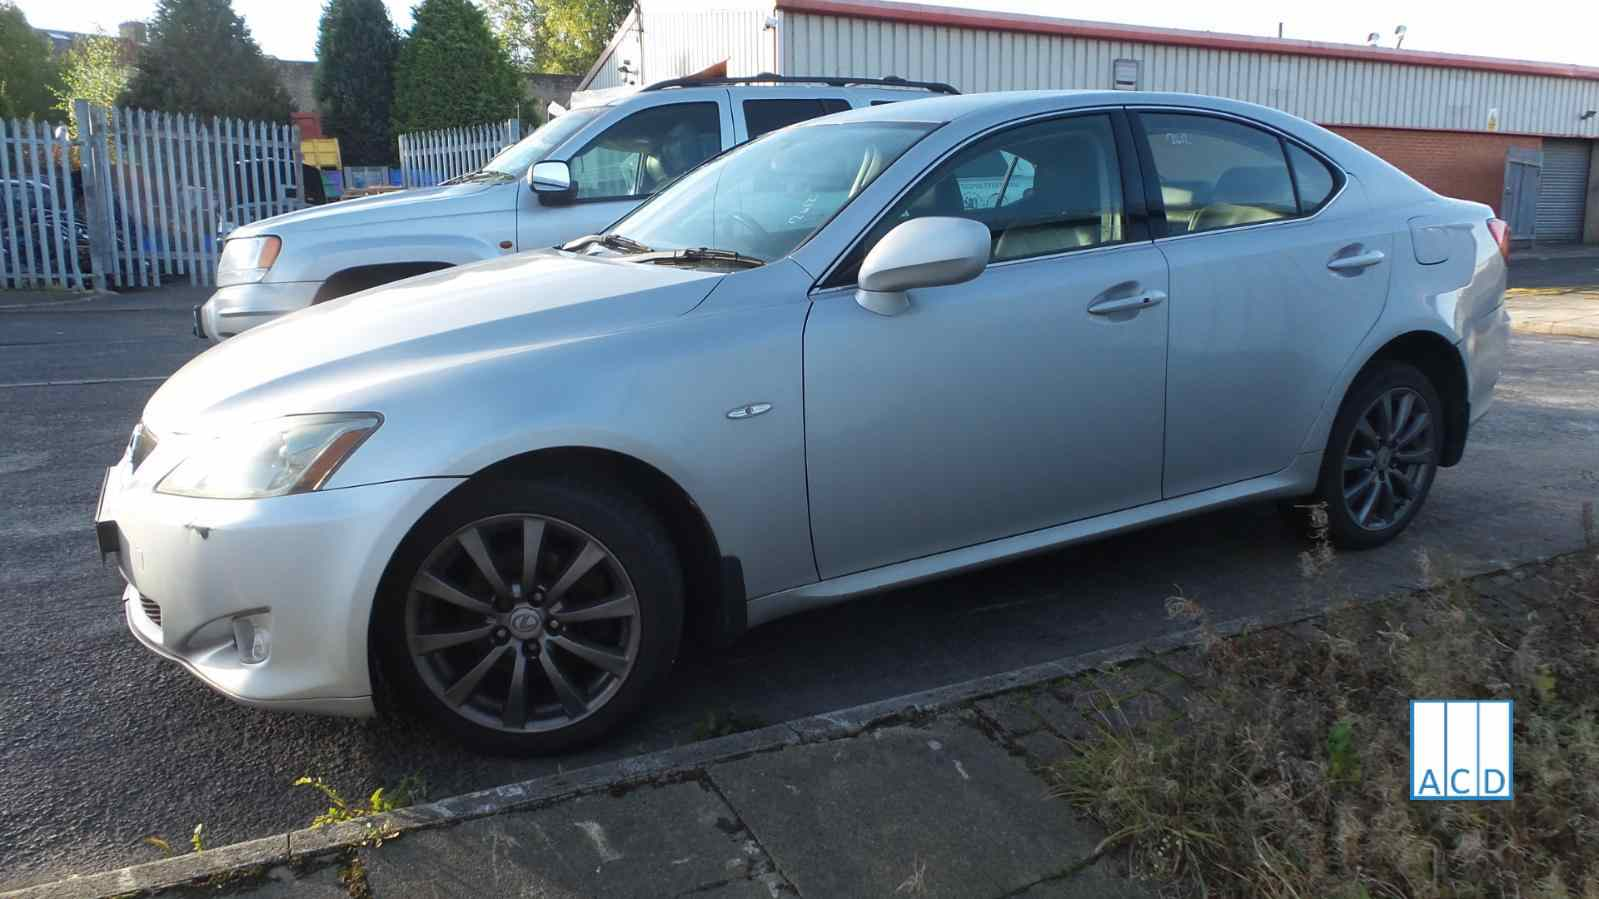 Lexus IS220D SE 2.2L Diesel 6-Speed Manual 2007 #2612 01